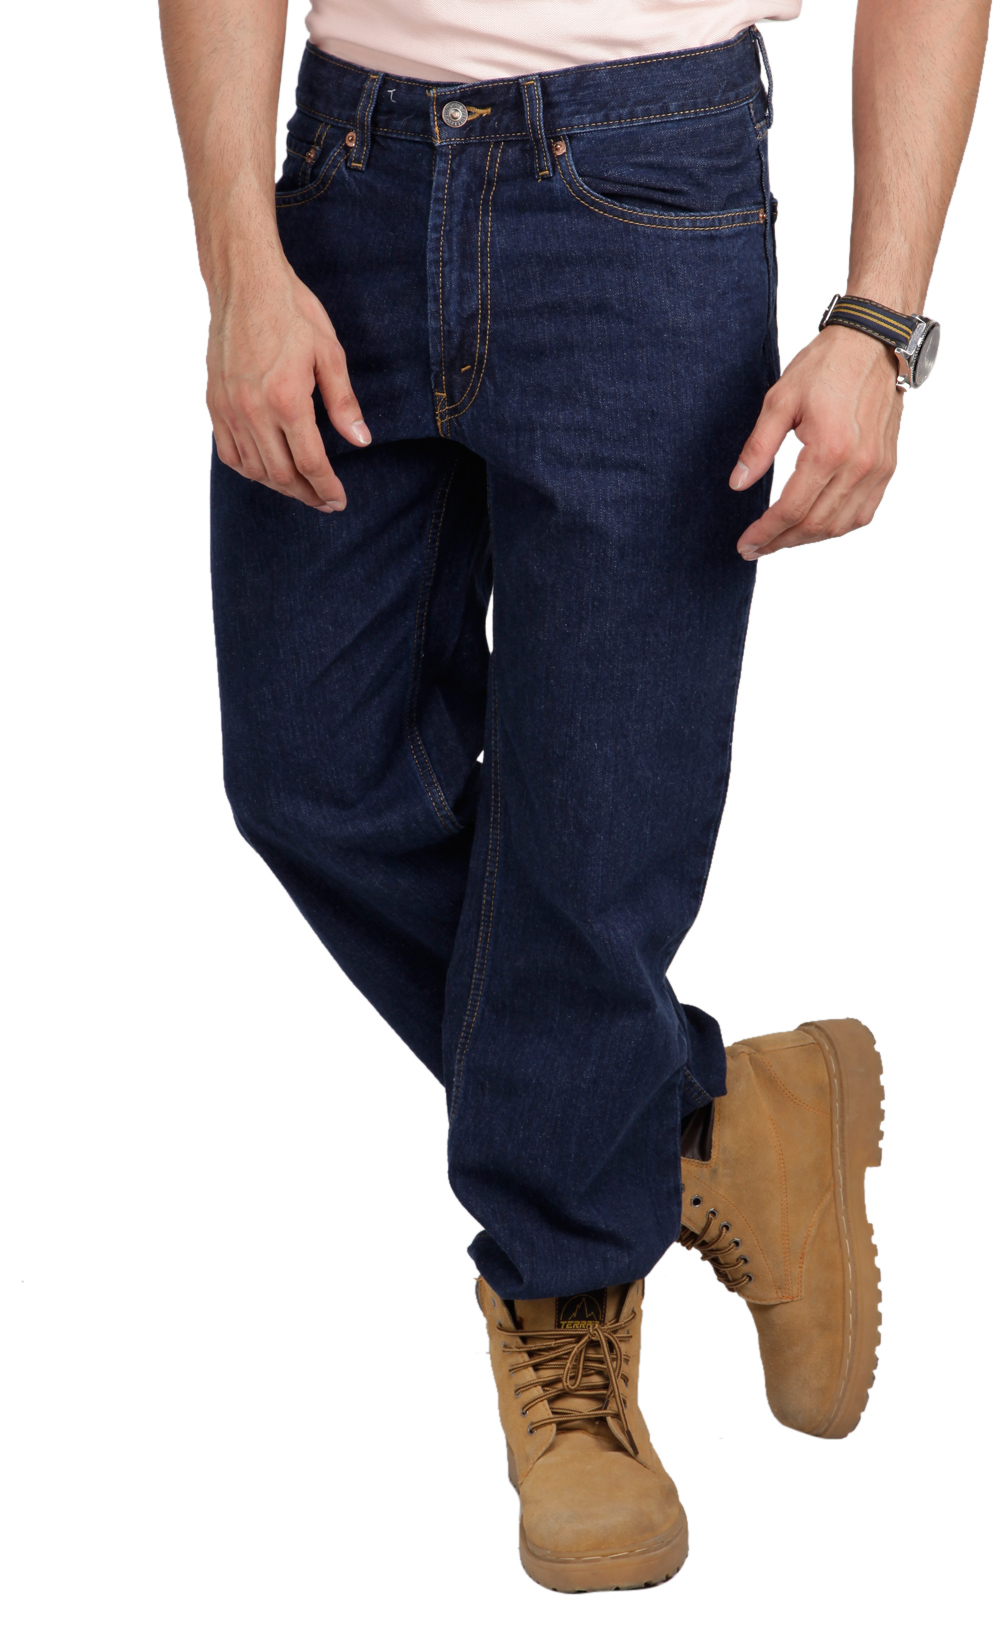 Buy Levis Blue Denim Regular Fit Men jeans at Rs.999